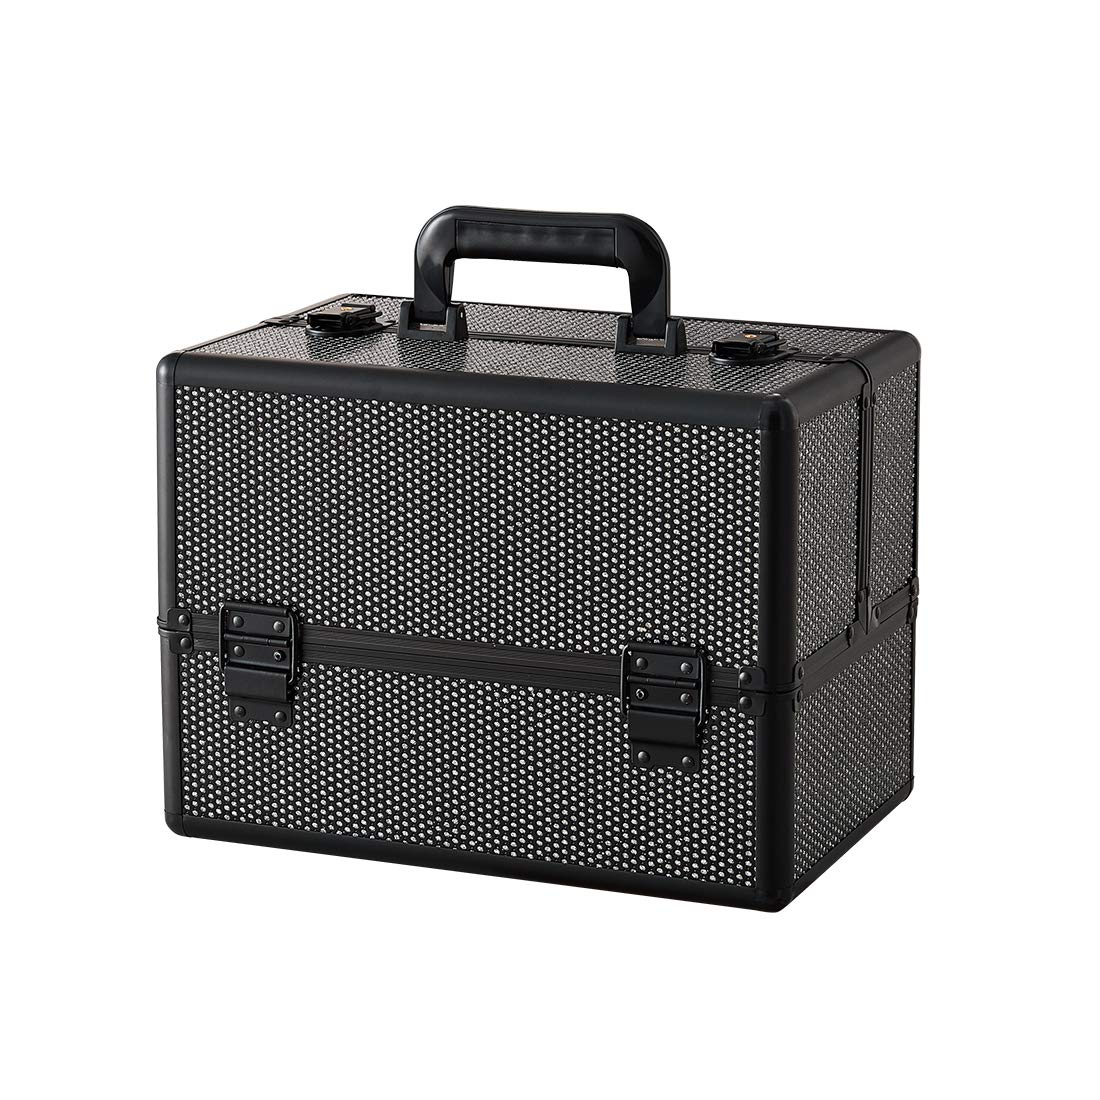 Makeup case - Professional Portable Aluminum Cosmetic Organizer Box With Folding Trays and Locks Black